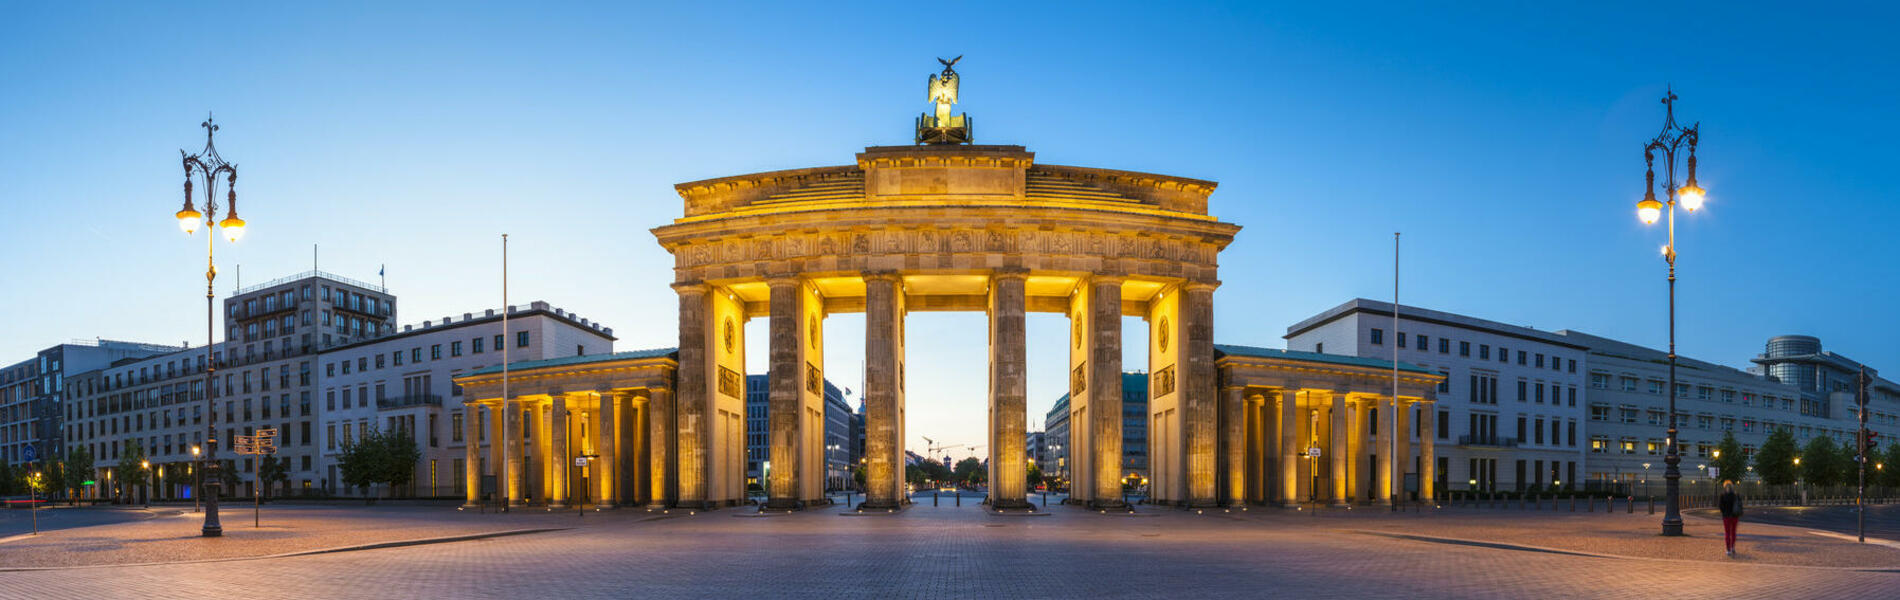 Berlin: Das Brandenburger Tor